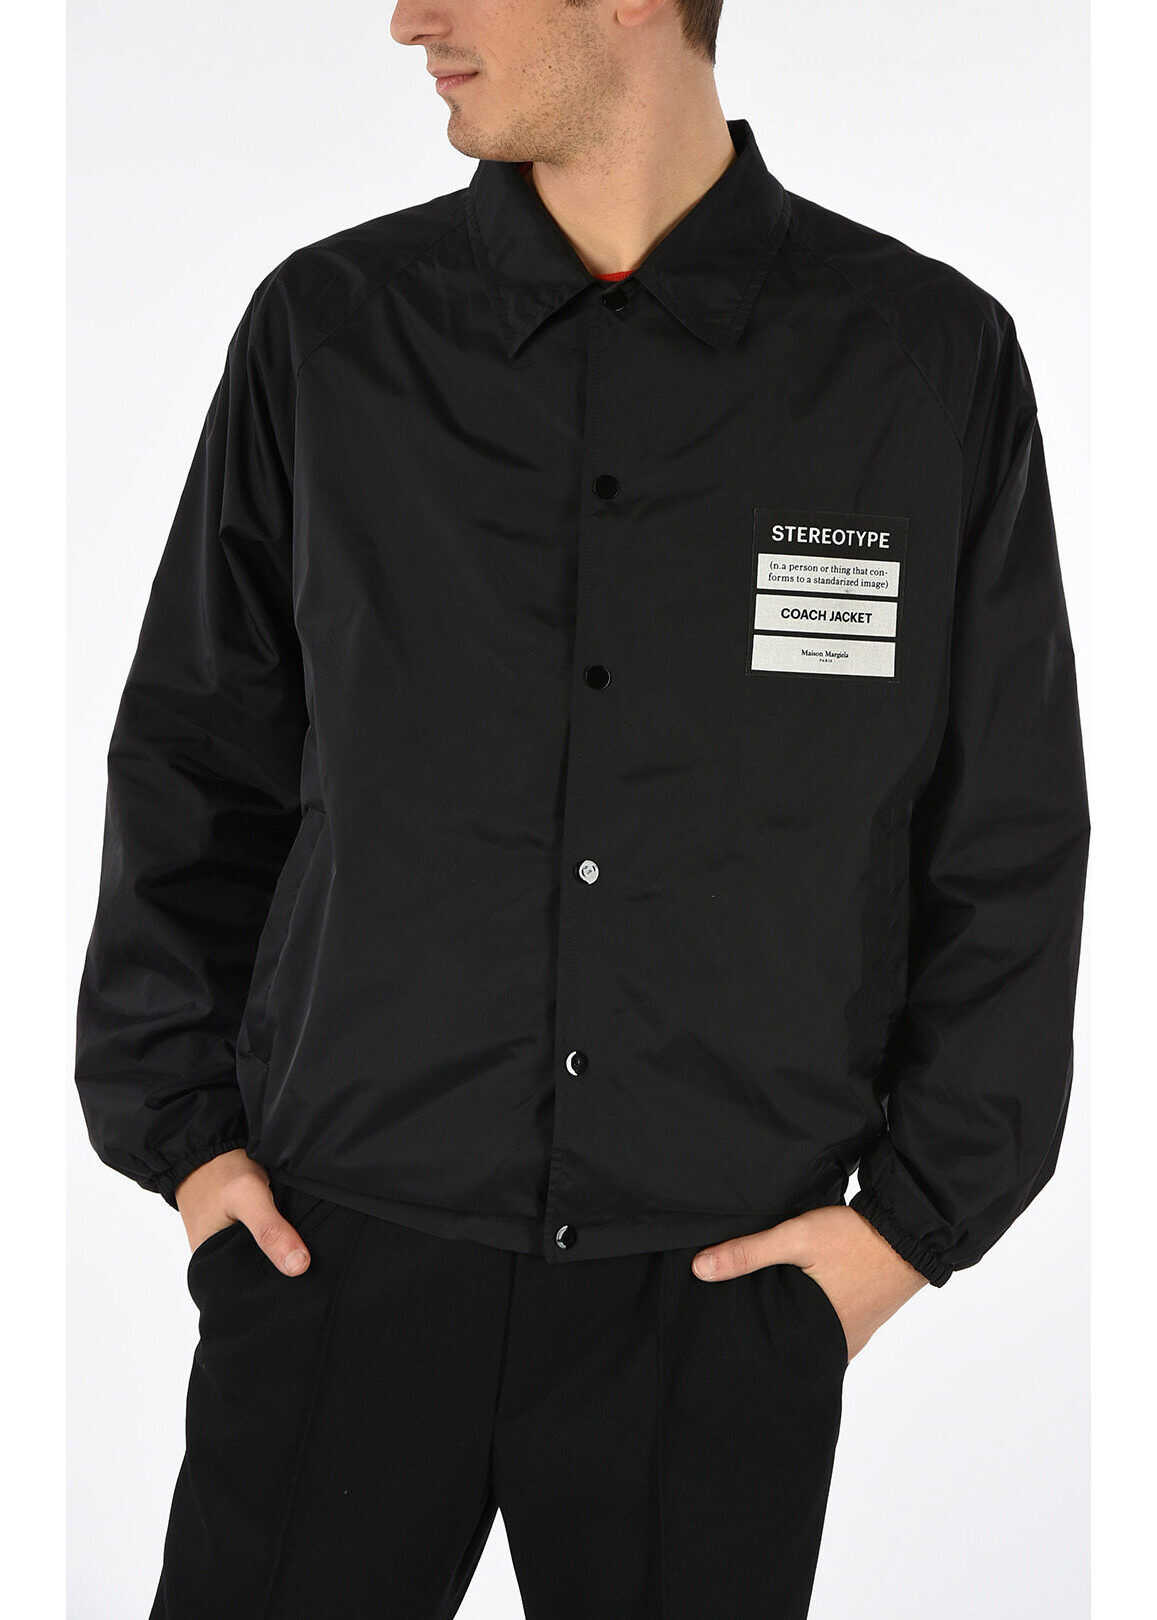 """MM10 """"STEREOTYPE"""" Coach Jacket"""